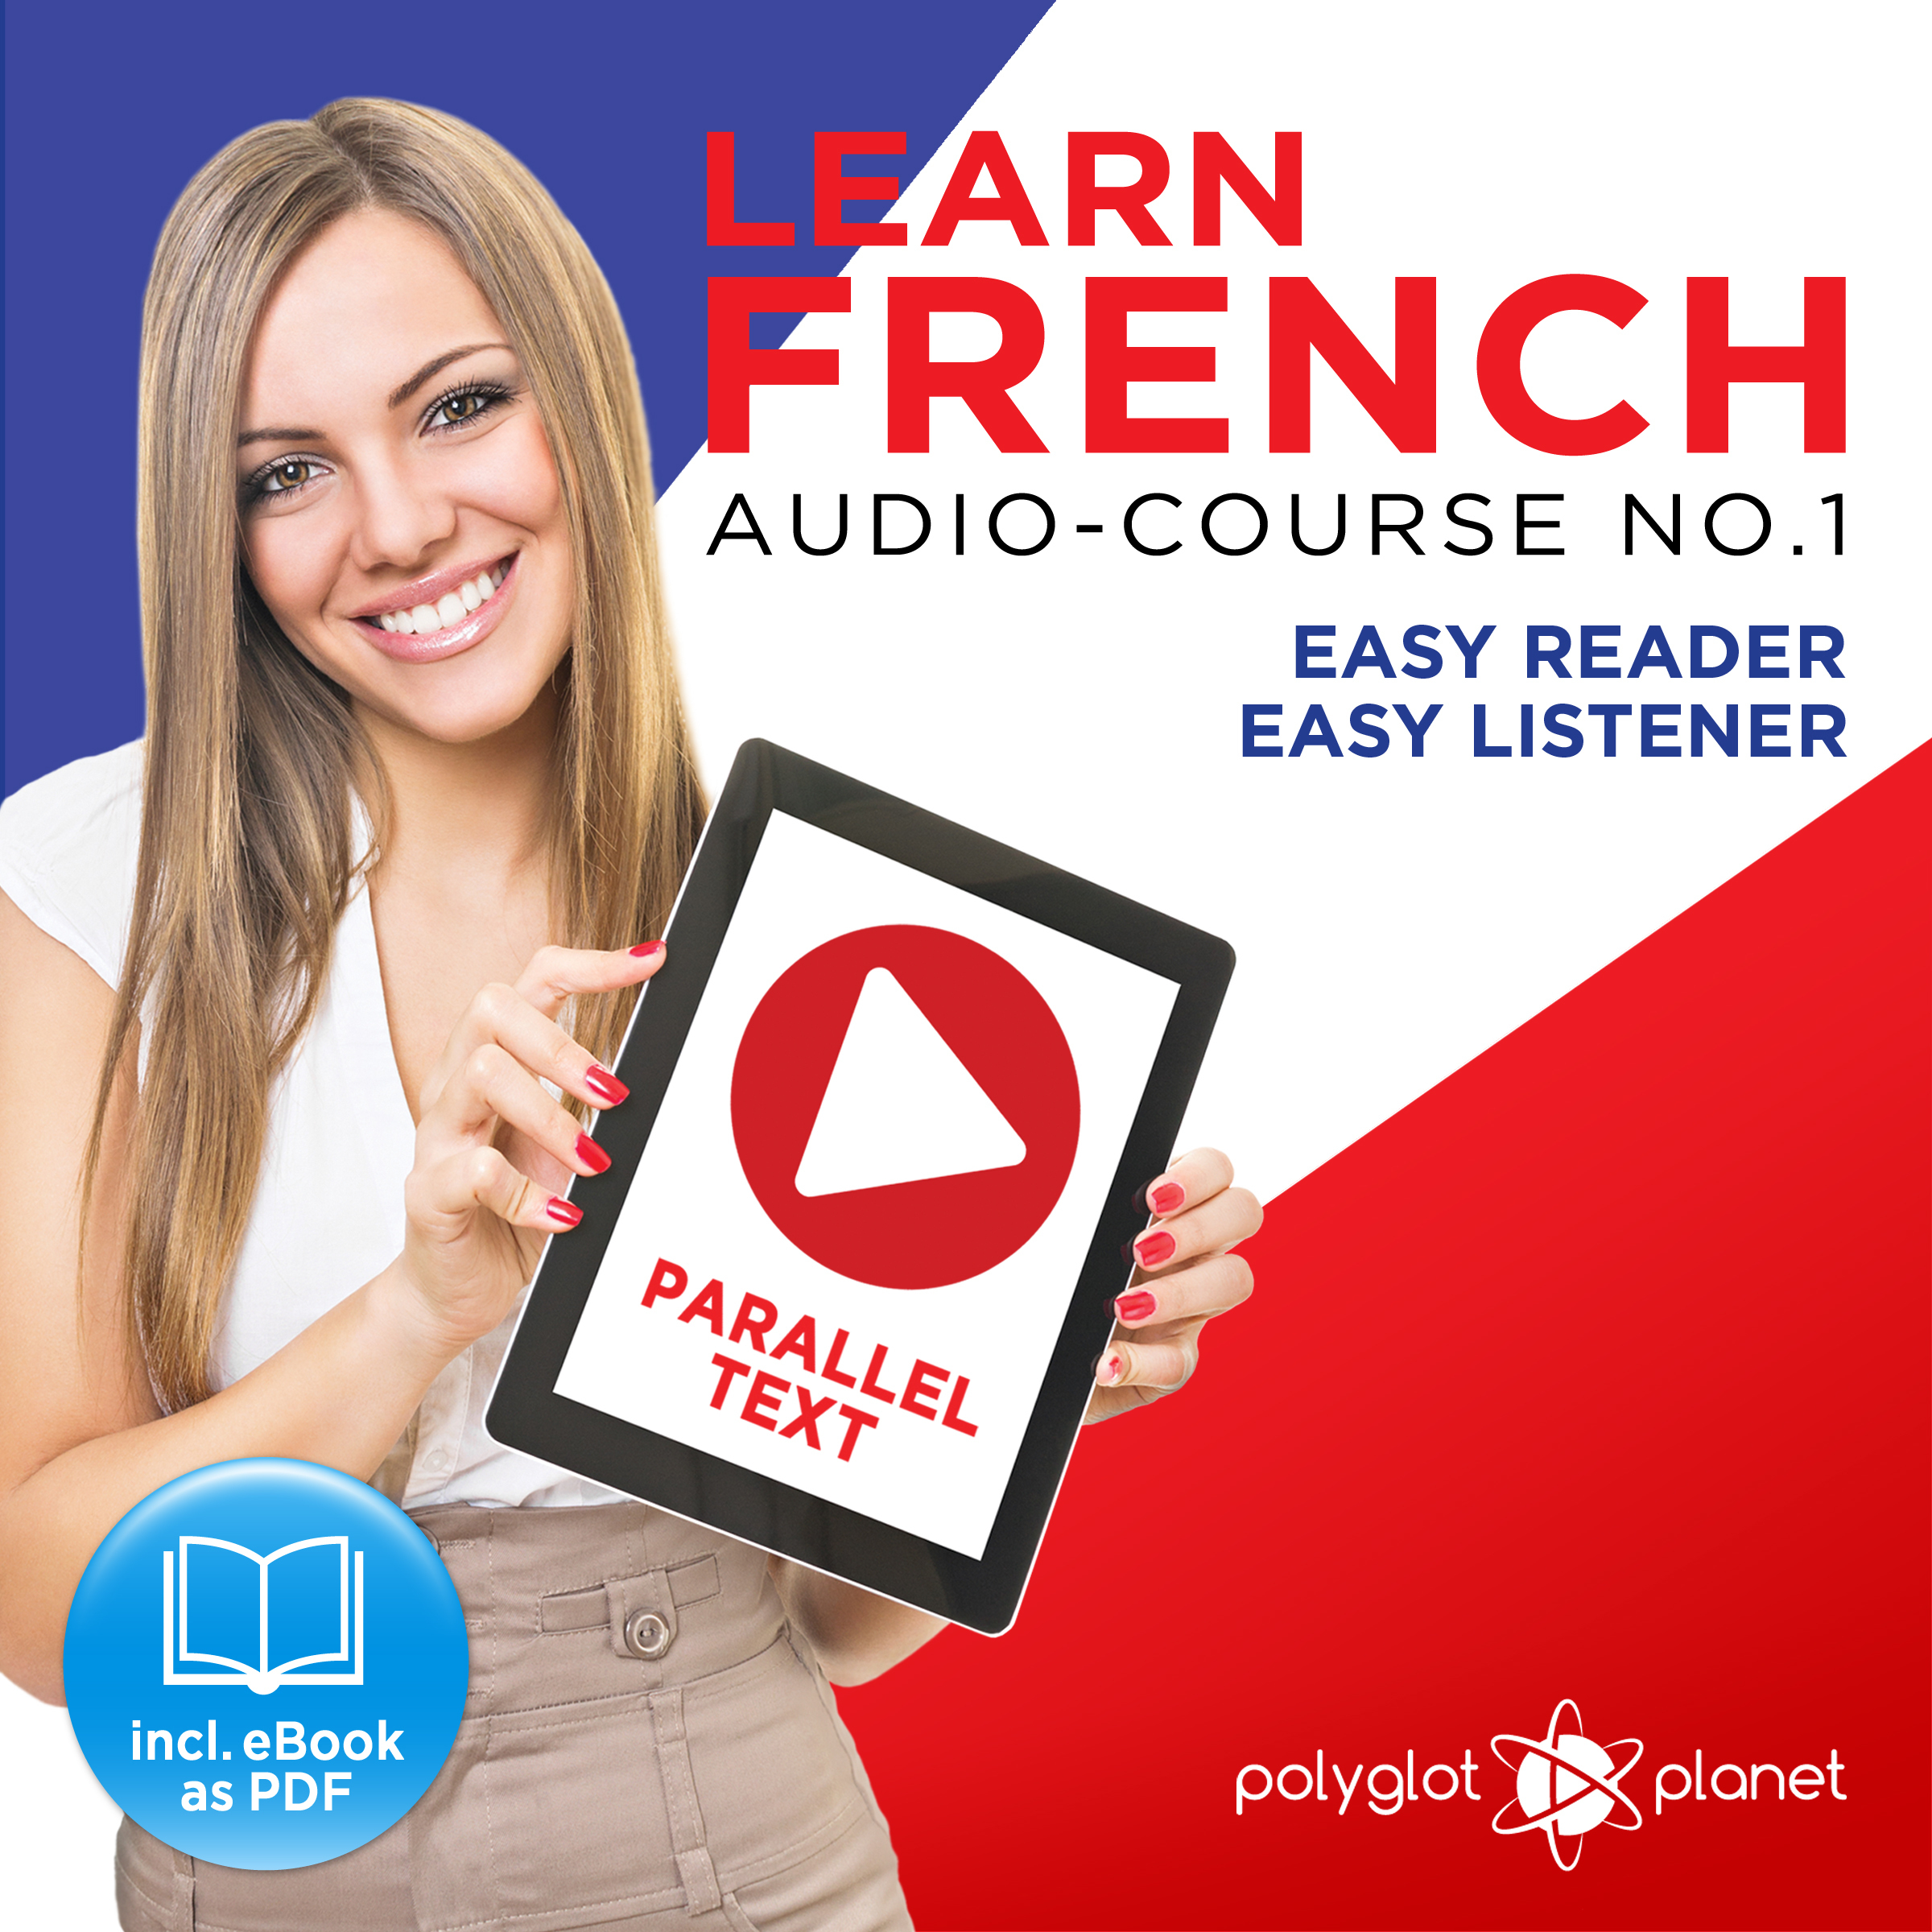 Printable Learn French - Easy Reader - Easy Listener Parallel Text Audio Course No. 1 - The French Easy Reader - Easy Audio Learning Course Audiobook Cover Art